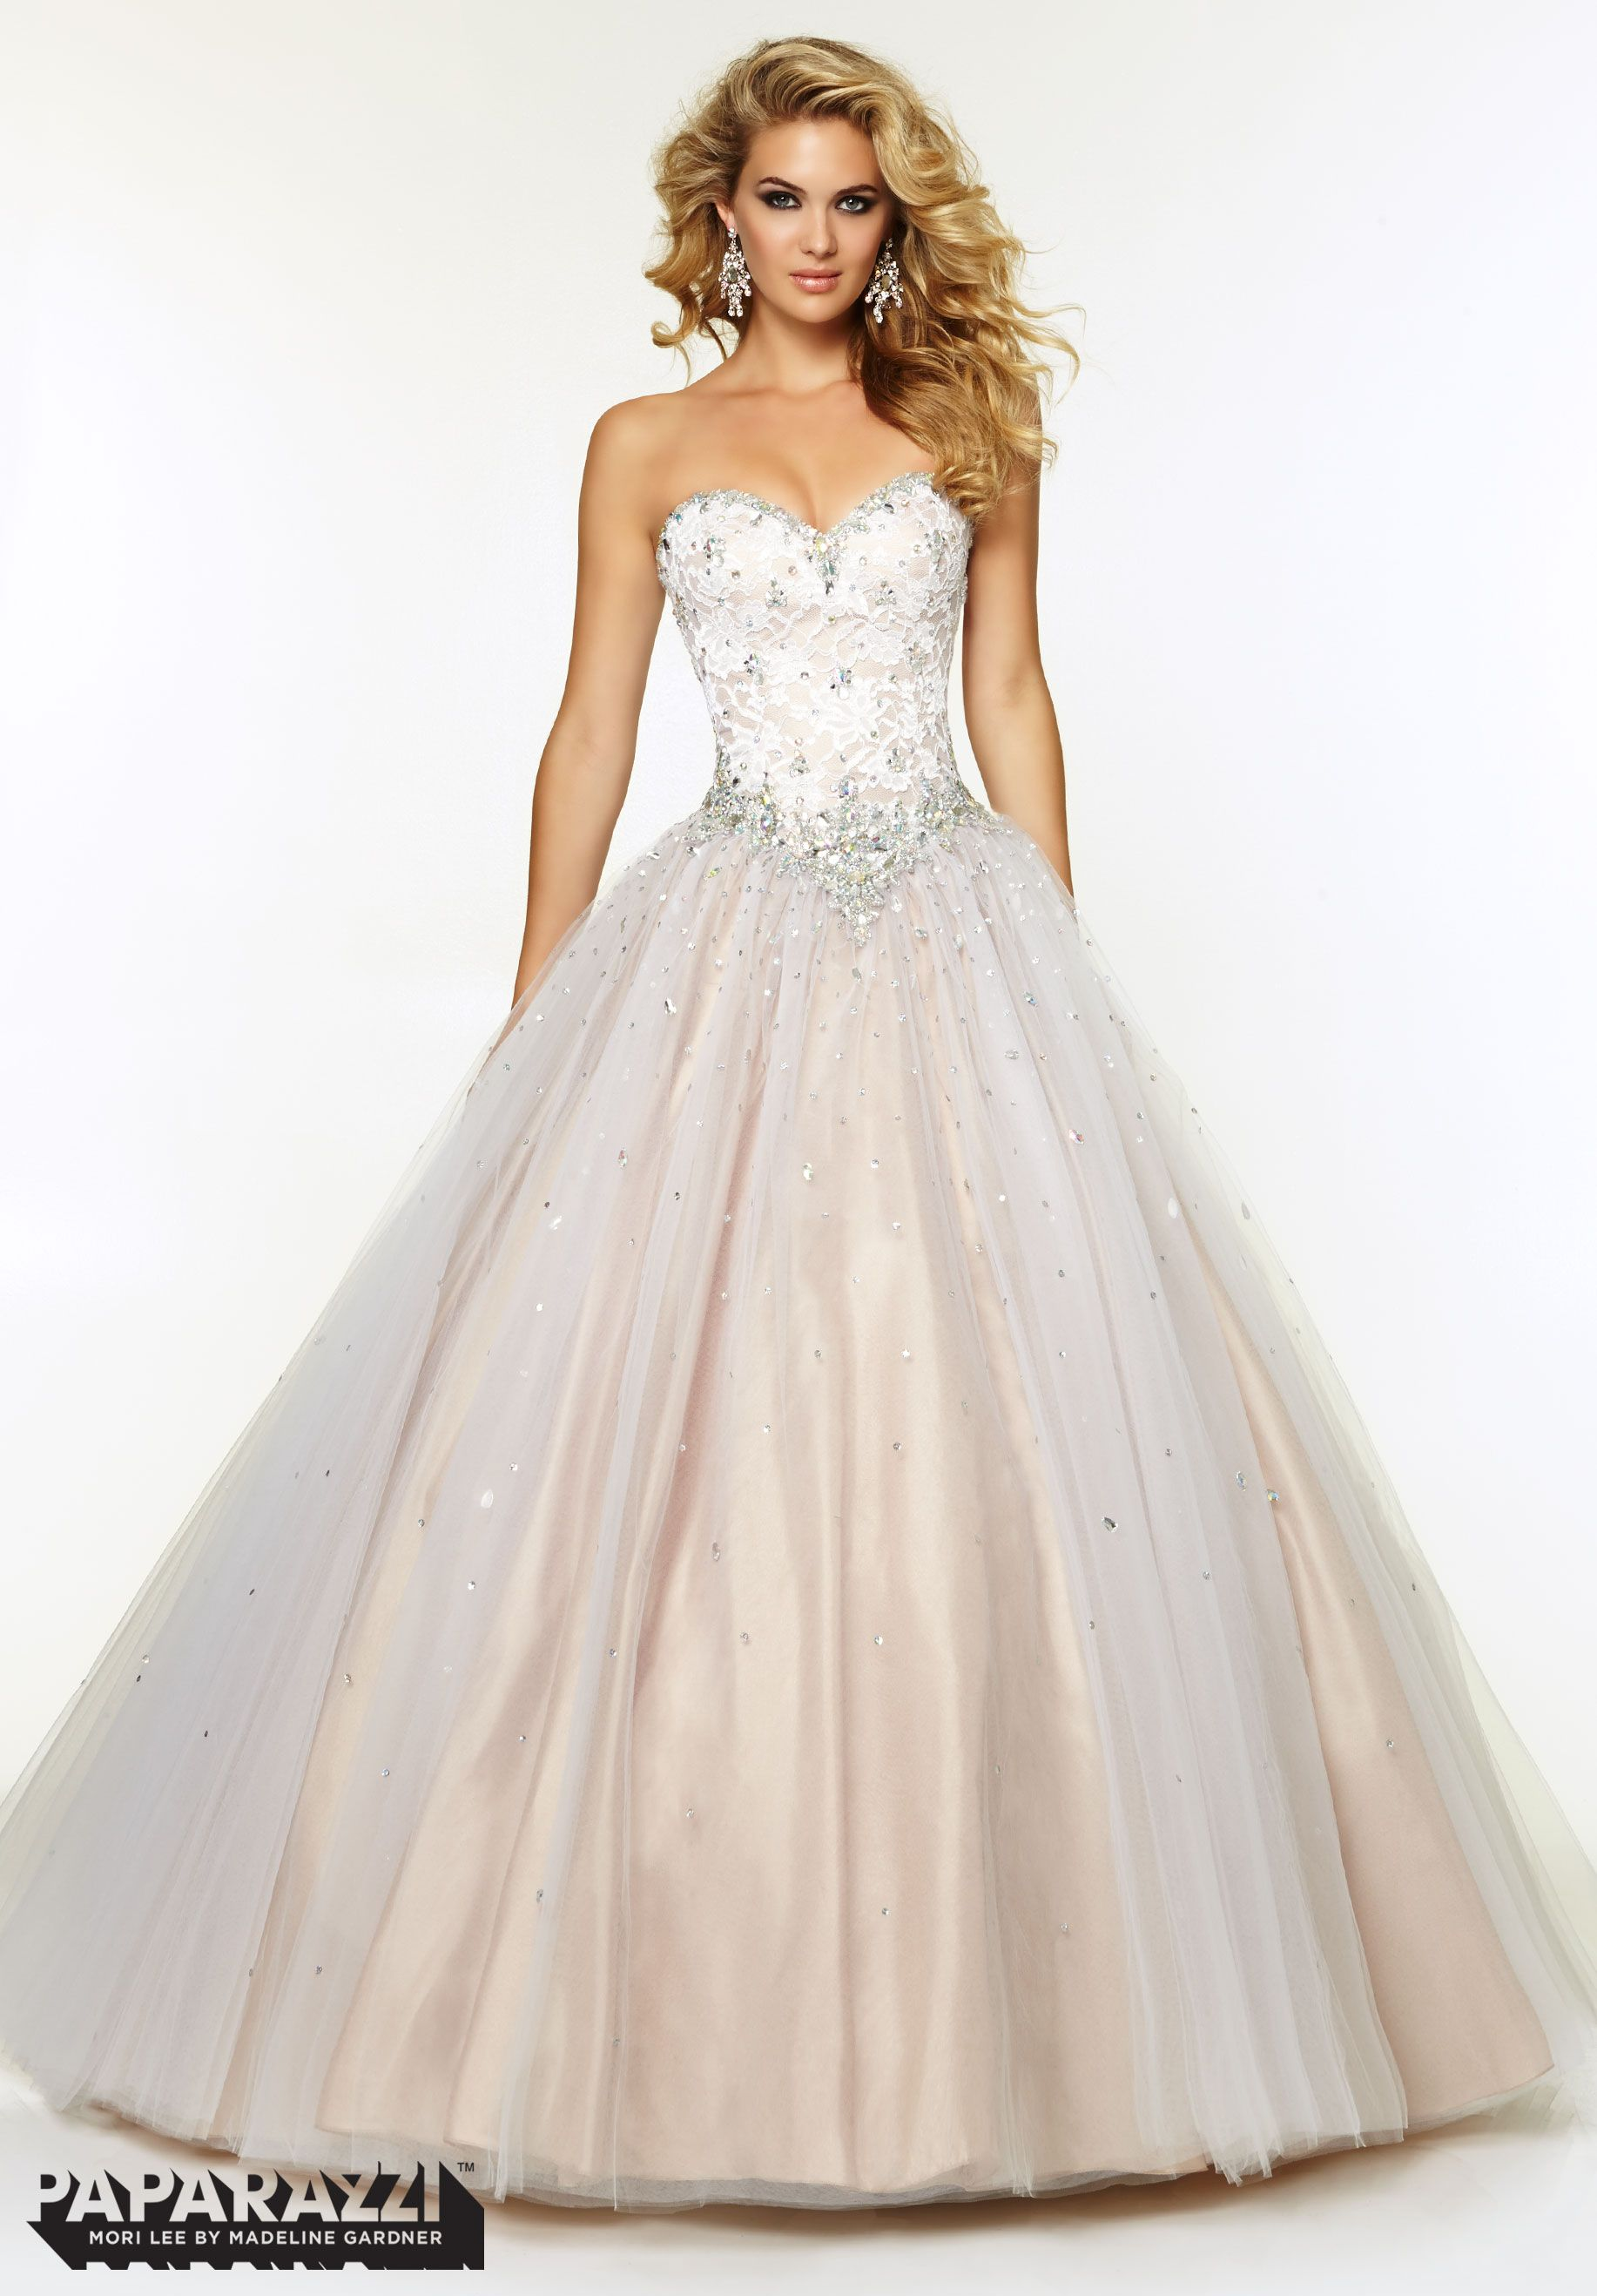 #prom #Dresses / #Gowns #Style 97076: #Jeweled #Beading on #Lace and #tulle Ball#Gown  http://www.paparazziprom.com/prom/paparazzi/97076